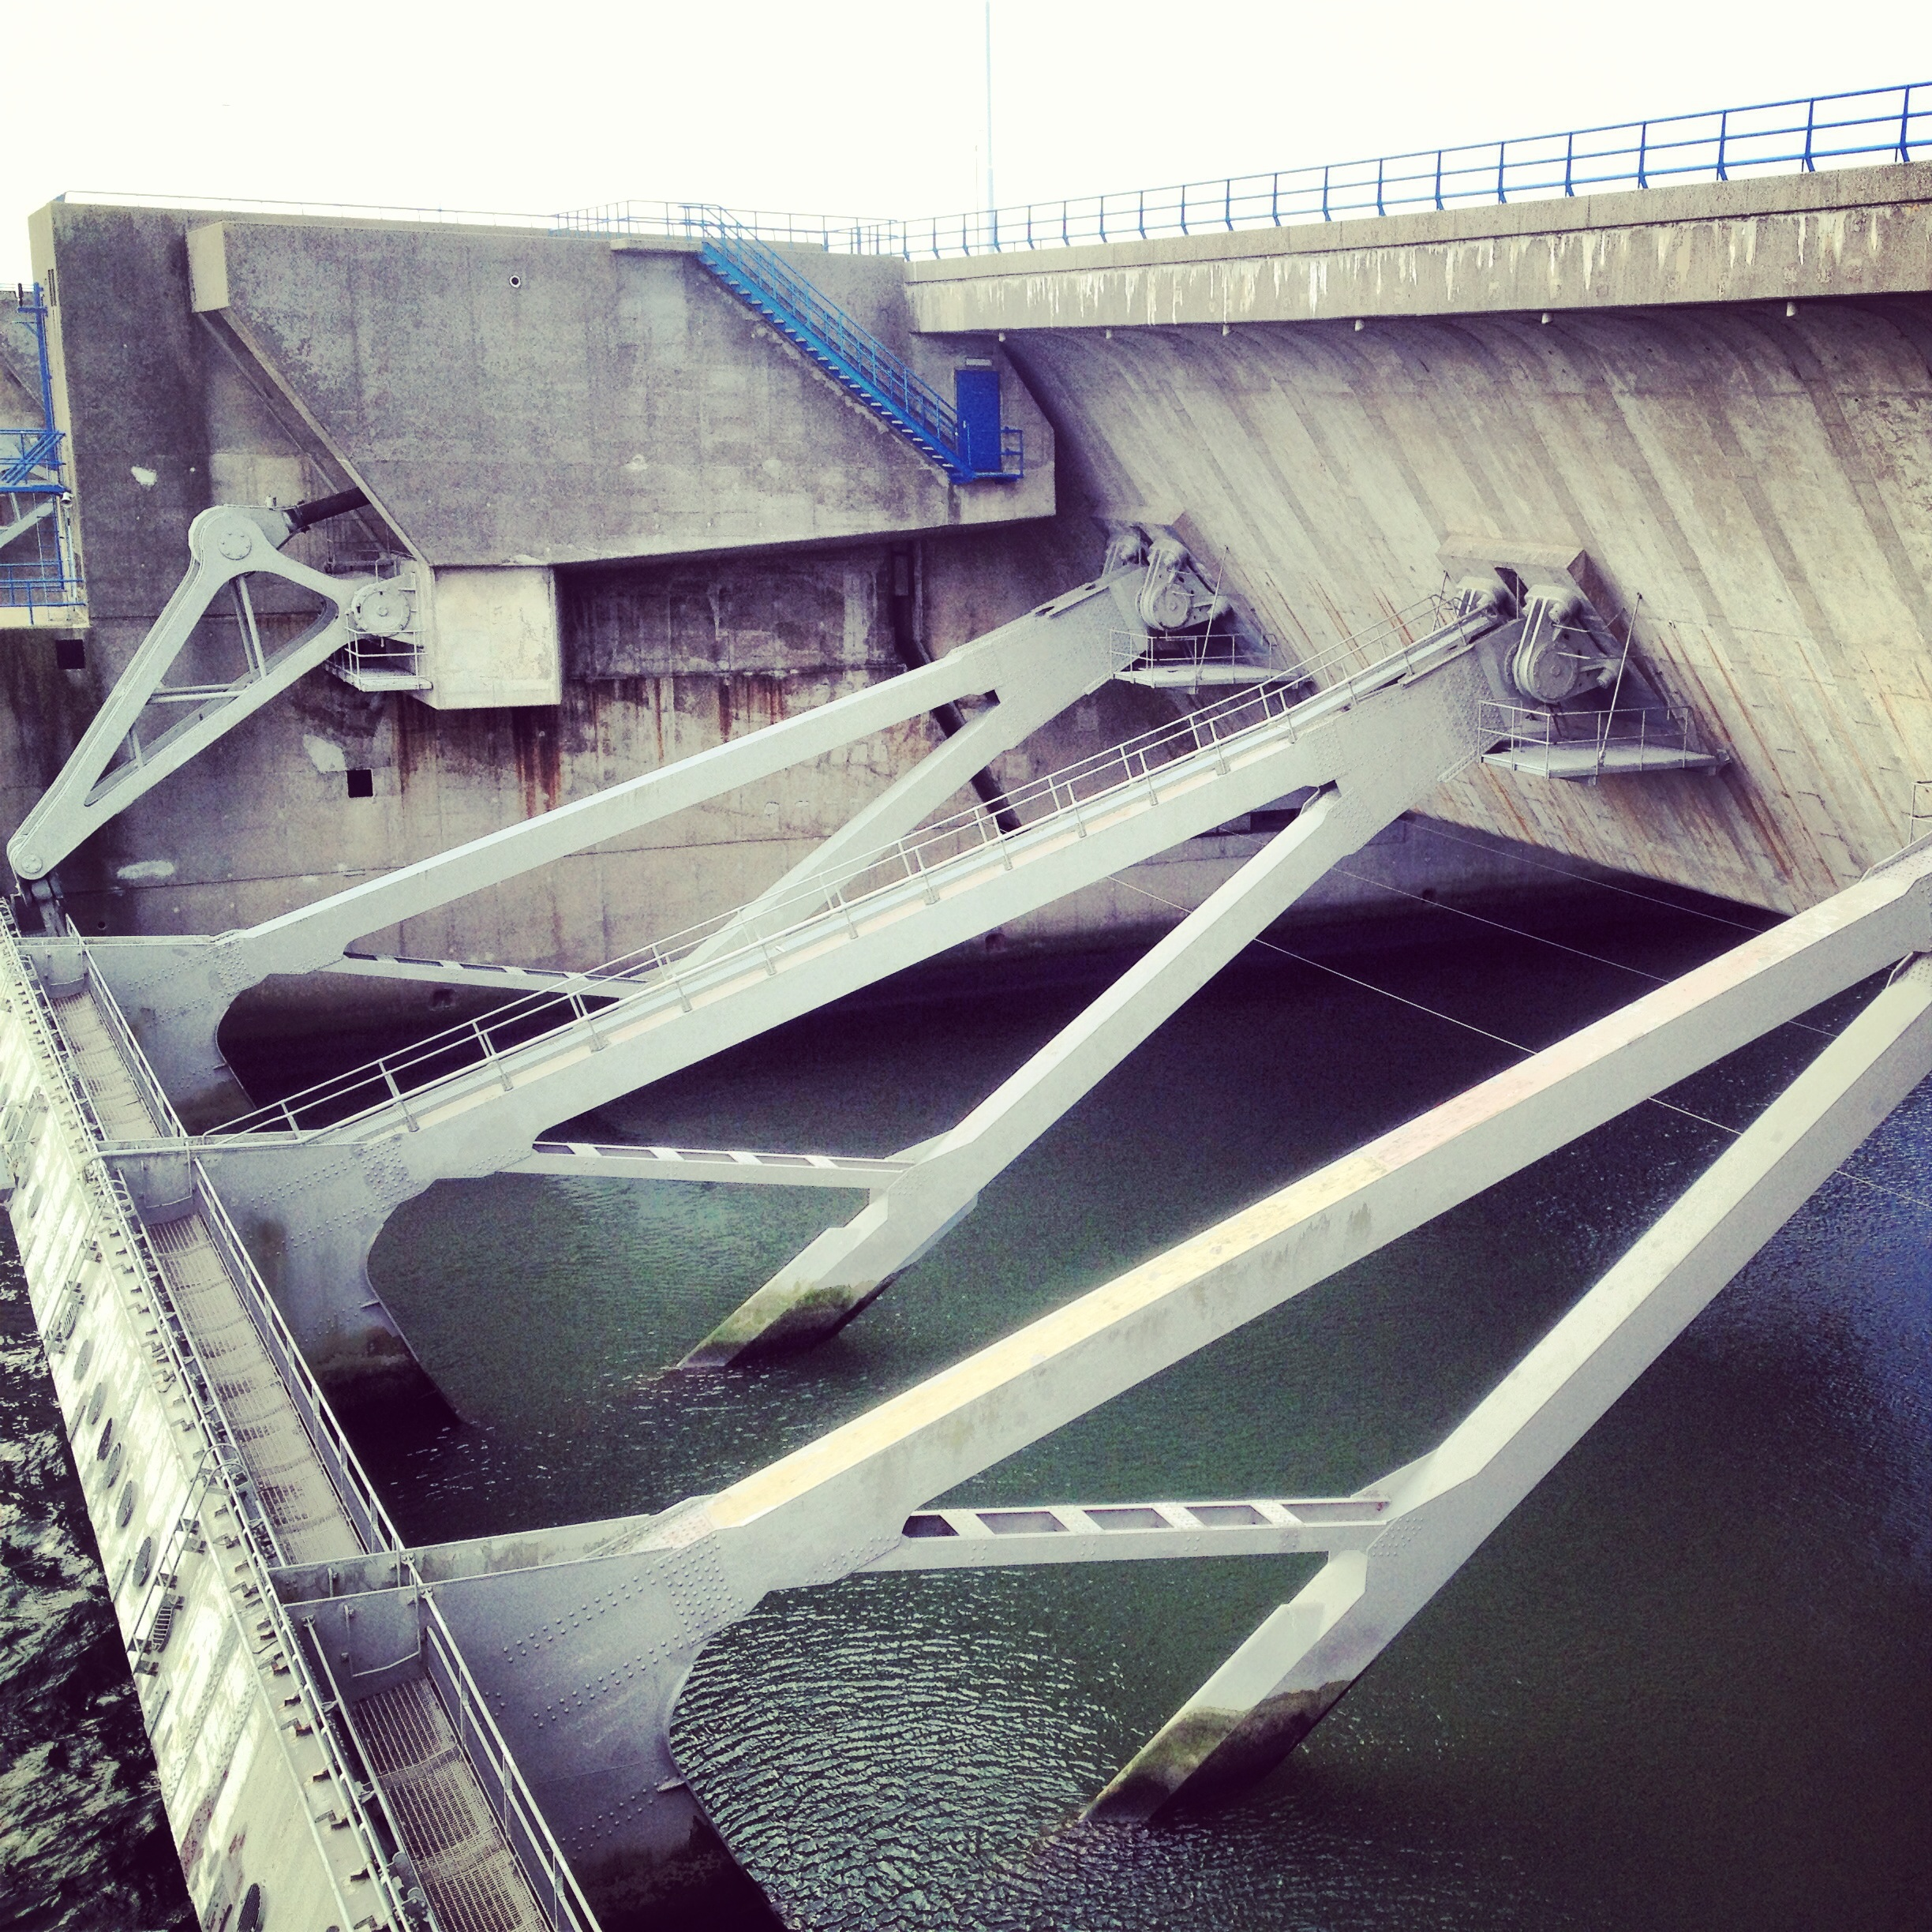 The massive truss that keeps the water out at Haringvliet Dam: photo by Arlen Stawasz